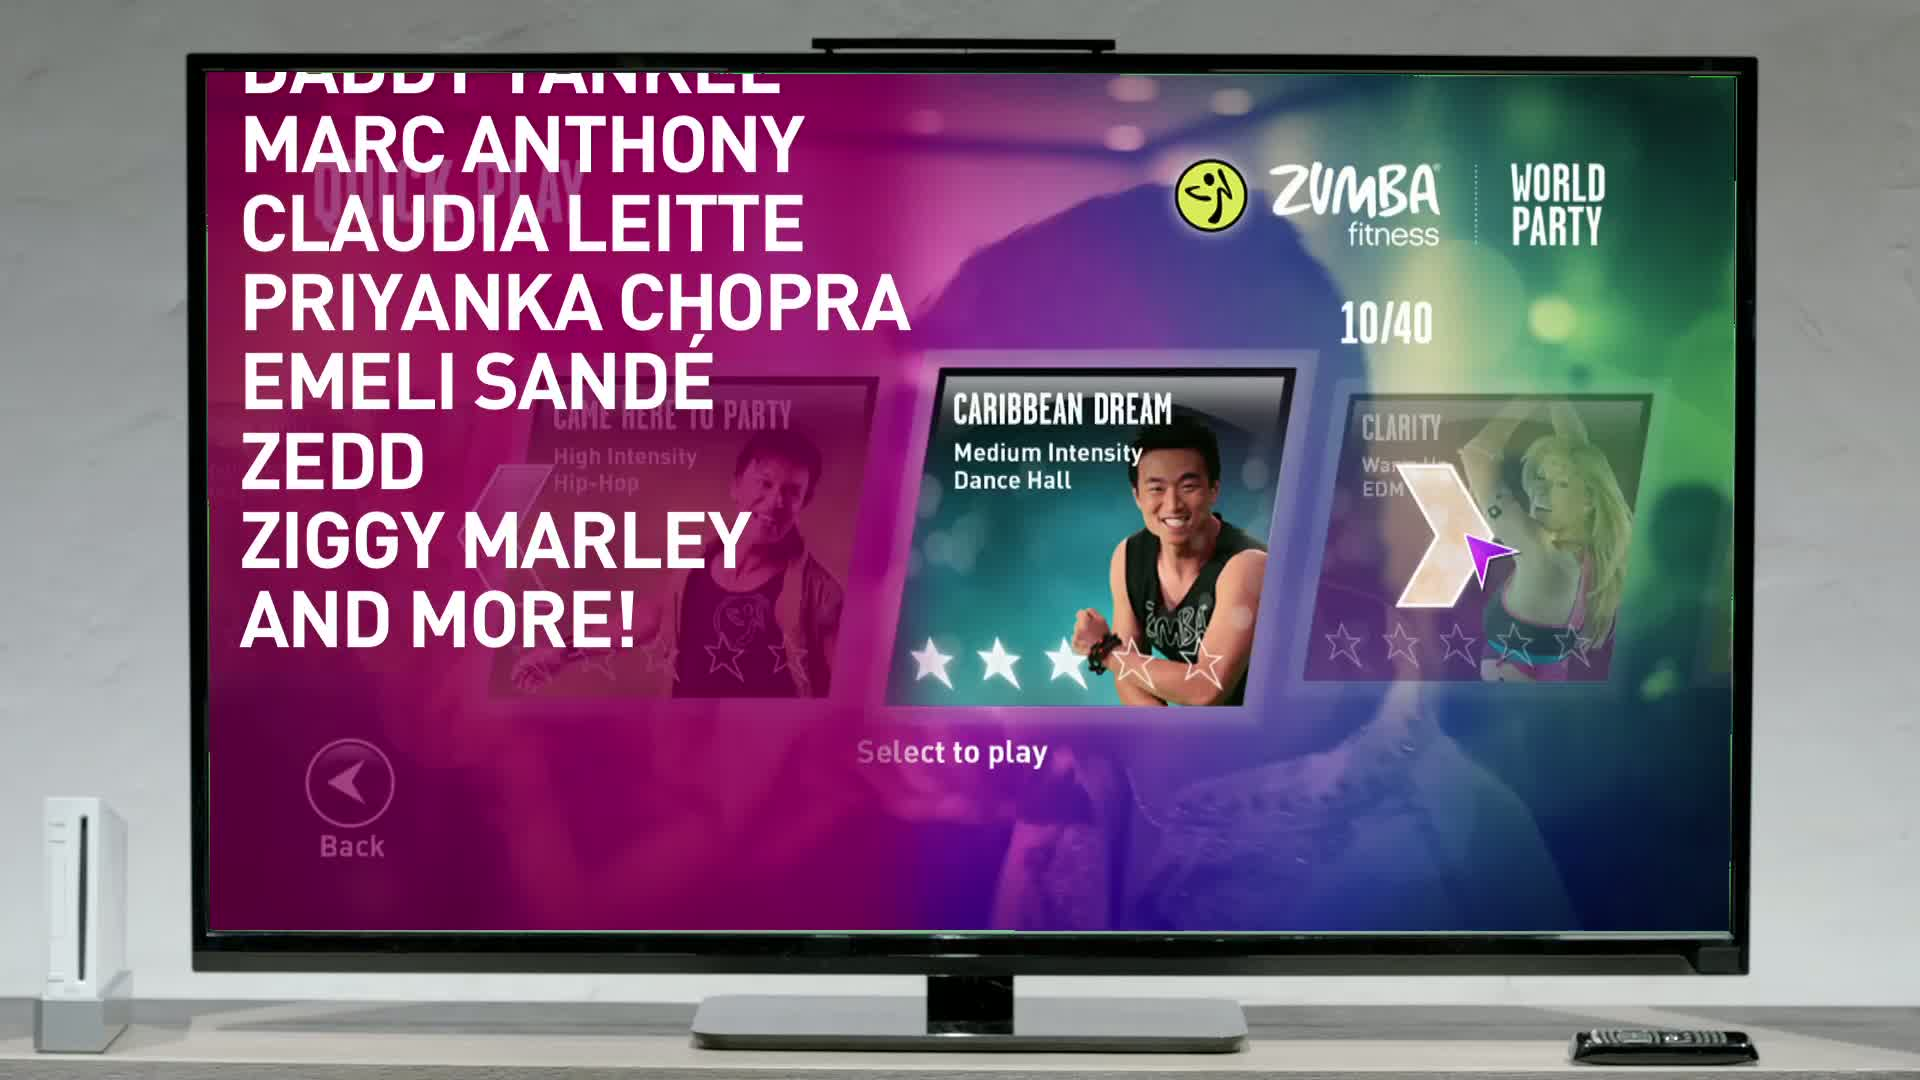 Zumba World Party  Videos and Trailers